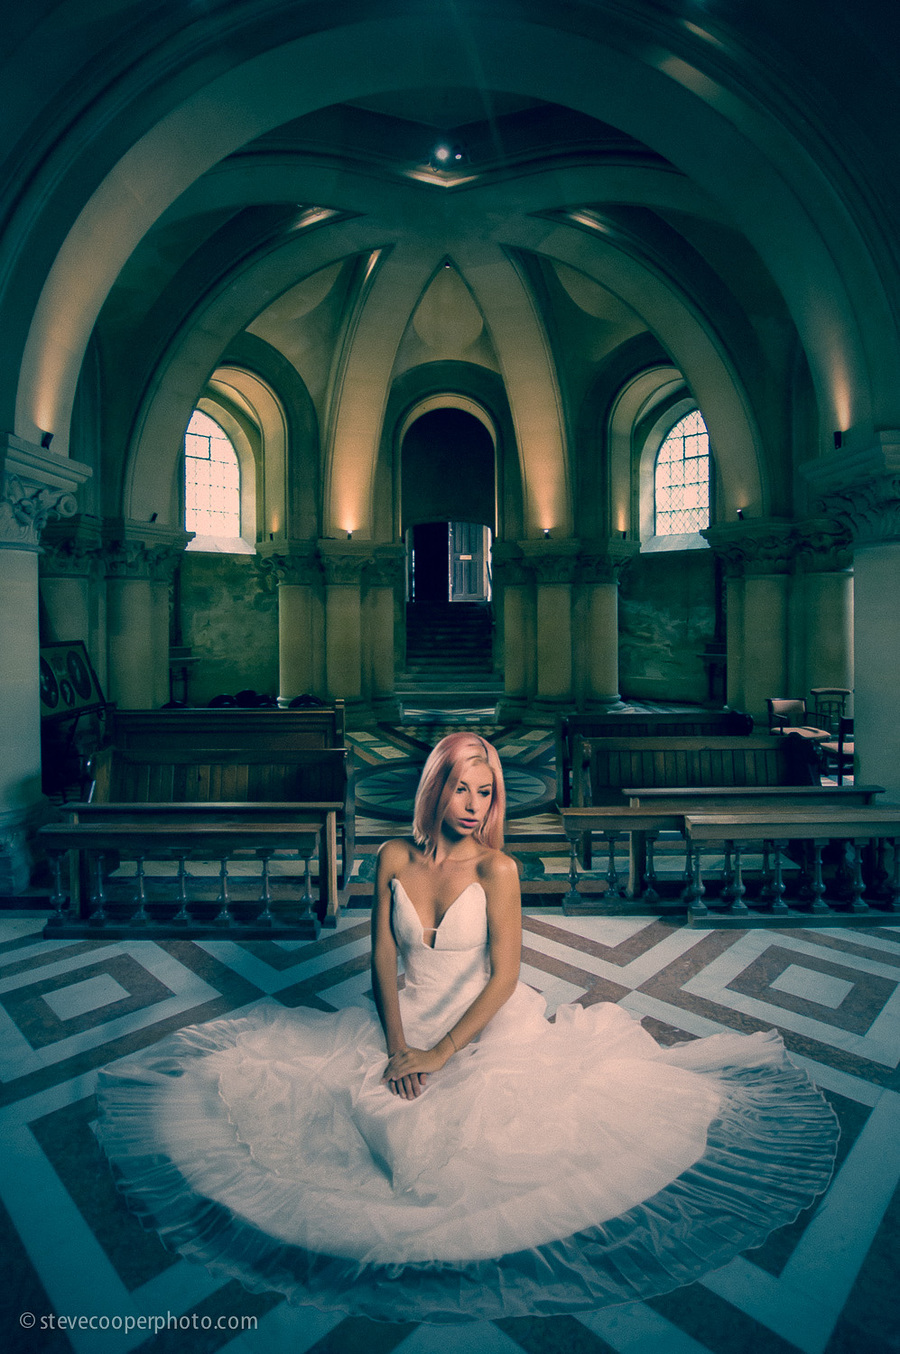 Bride in waiting / Photography by Steve Cooper, Post processing by Steve Cooper / Uploaded 30th September 2013 @ 10:35 PM